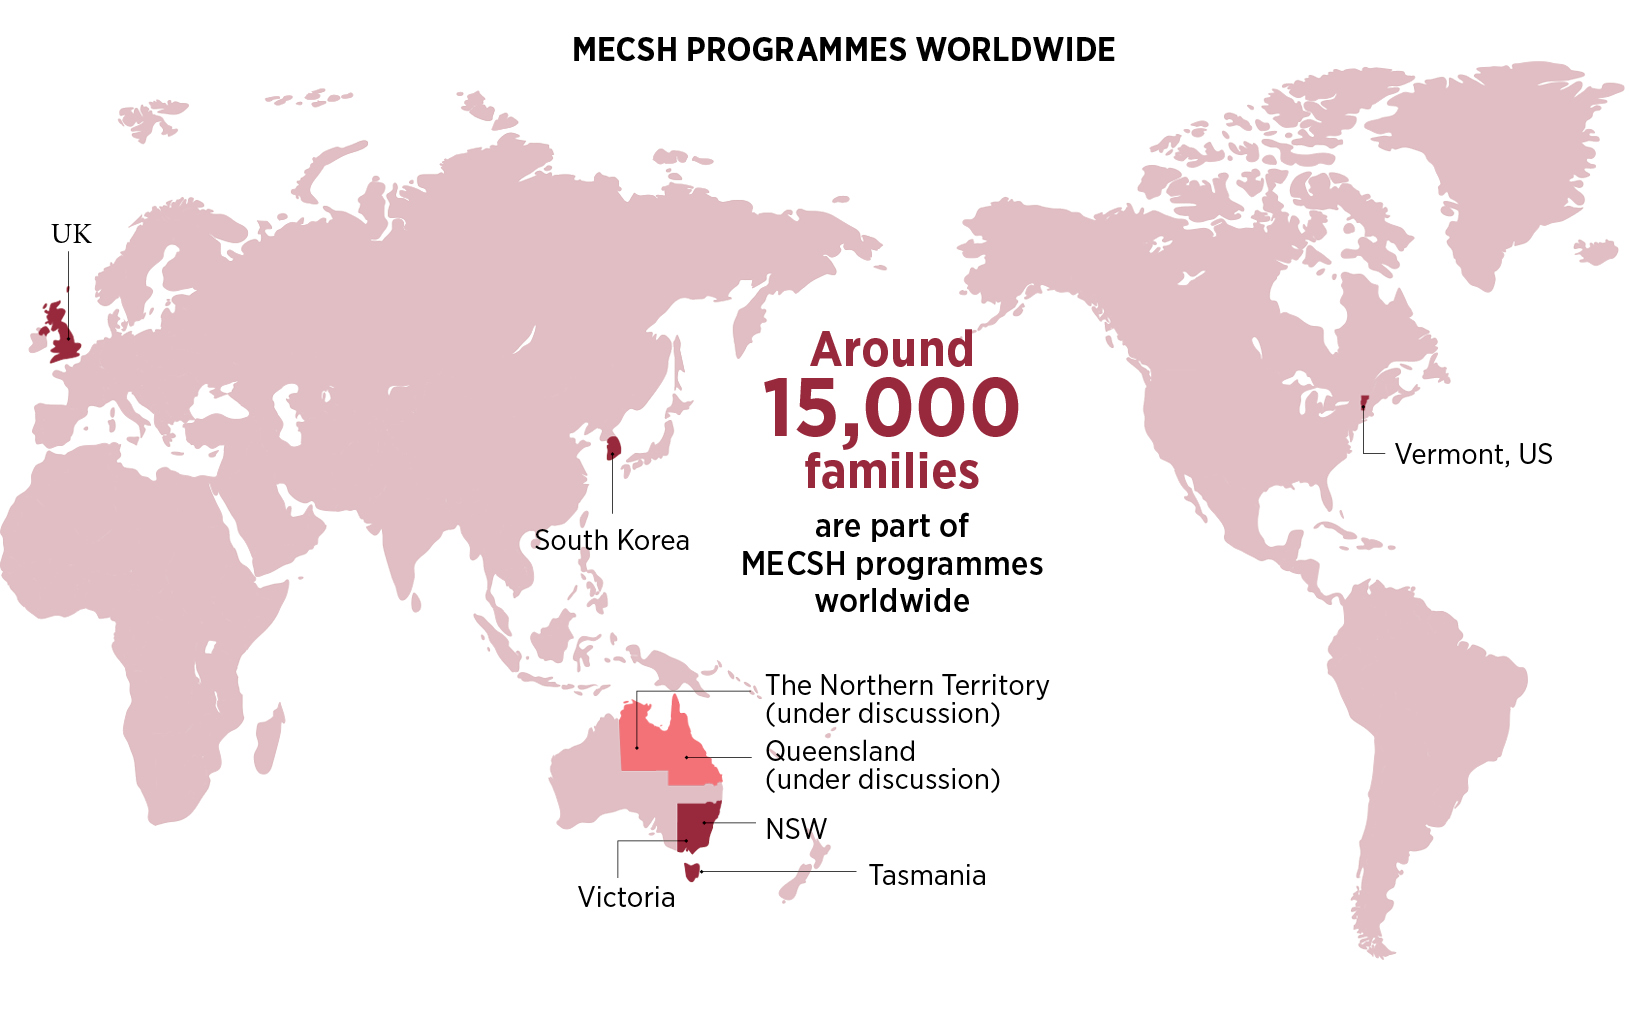 MESCH in numbers